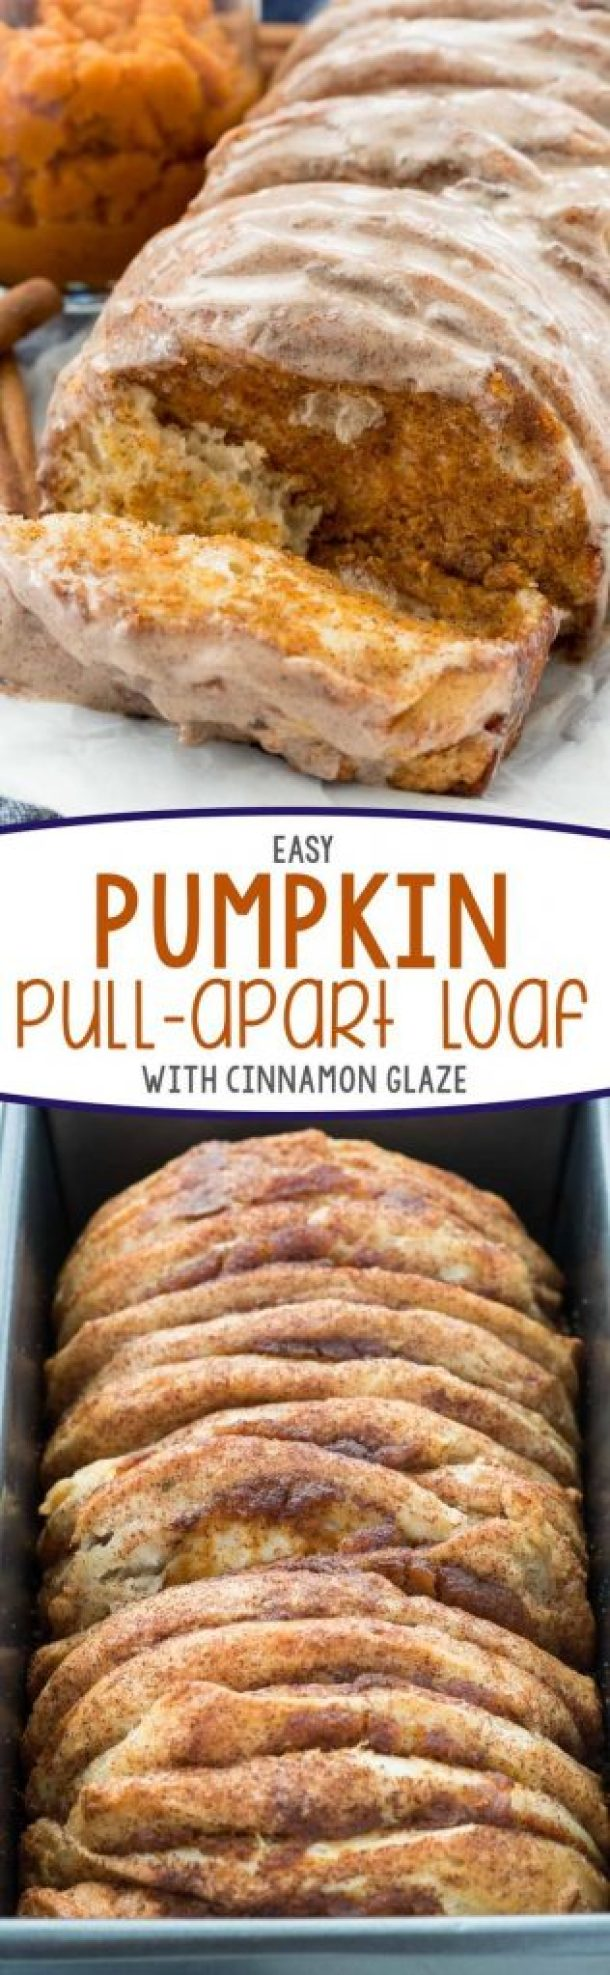 Easy Pumpkin Pull-Apart Loaf with Cinnamon Glaze Recipe | Crazy for Crust